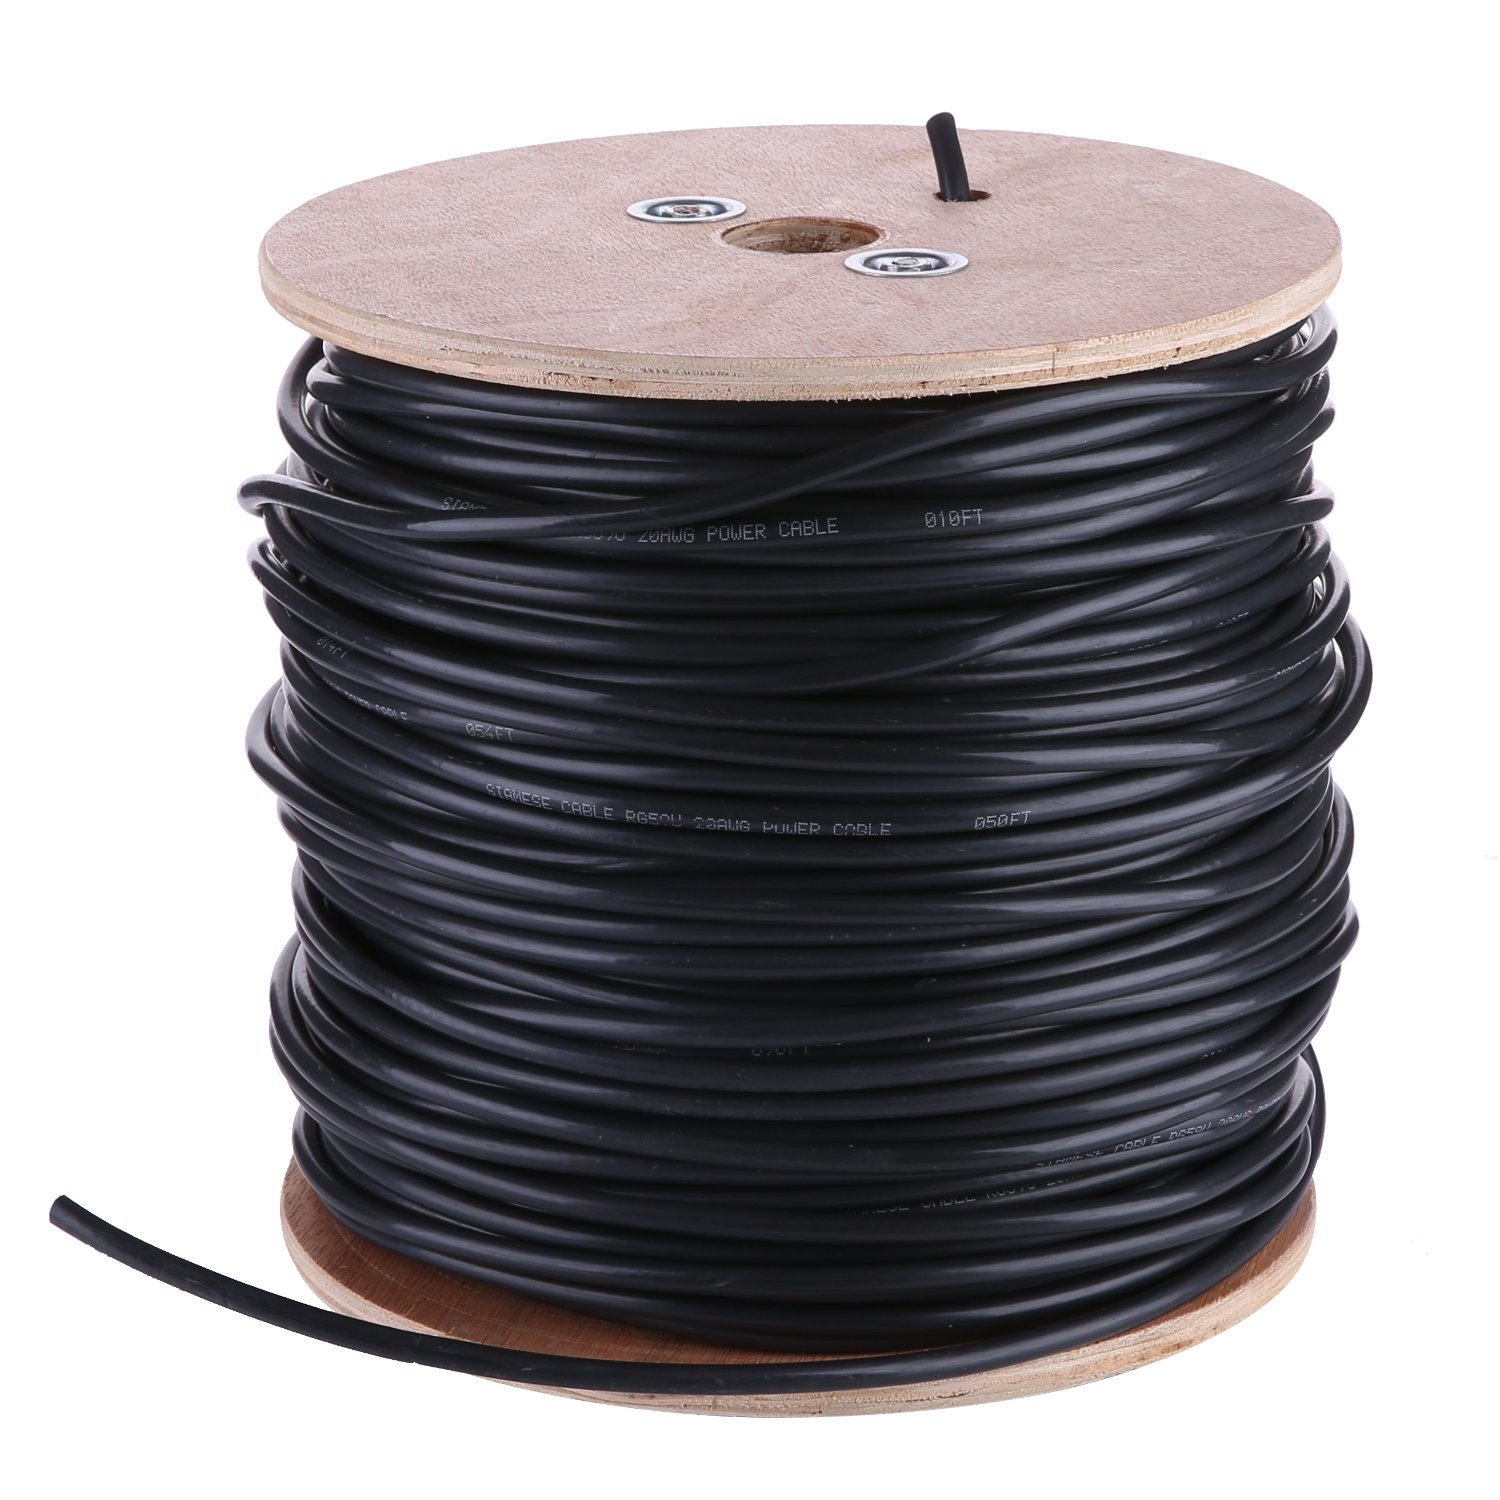 Amazon.com : ANNKE 1000ft RG59 Siamese Coaxial Cable Wire for CCTV Security Camera(Combo Video Only) : Camera & Photo